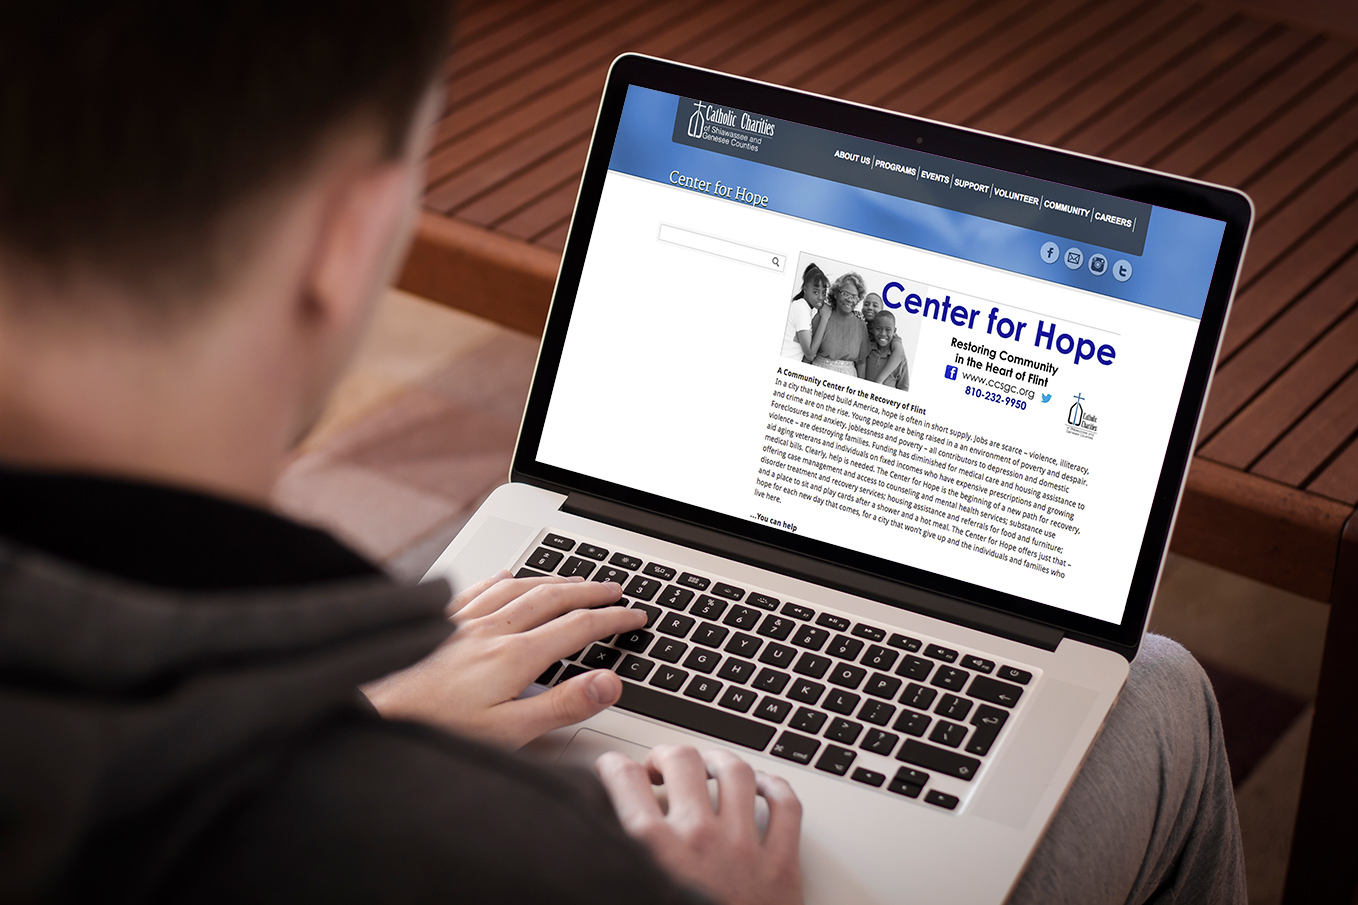 Image Of The Catholic Charities Digital Marketing Project